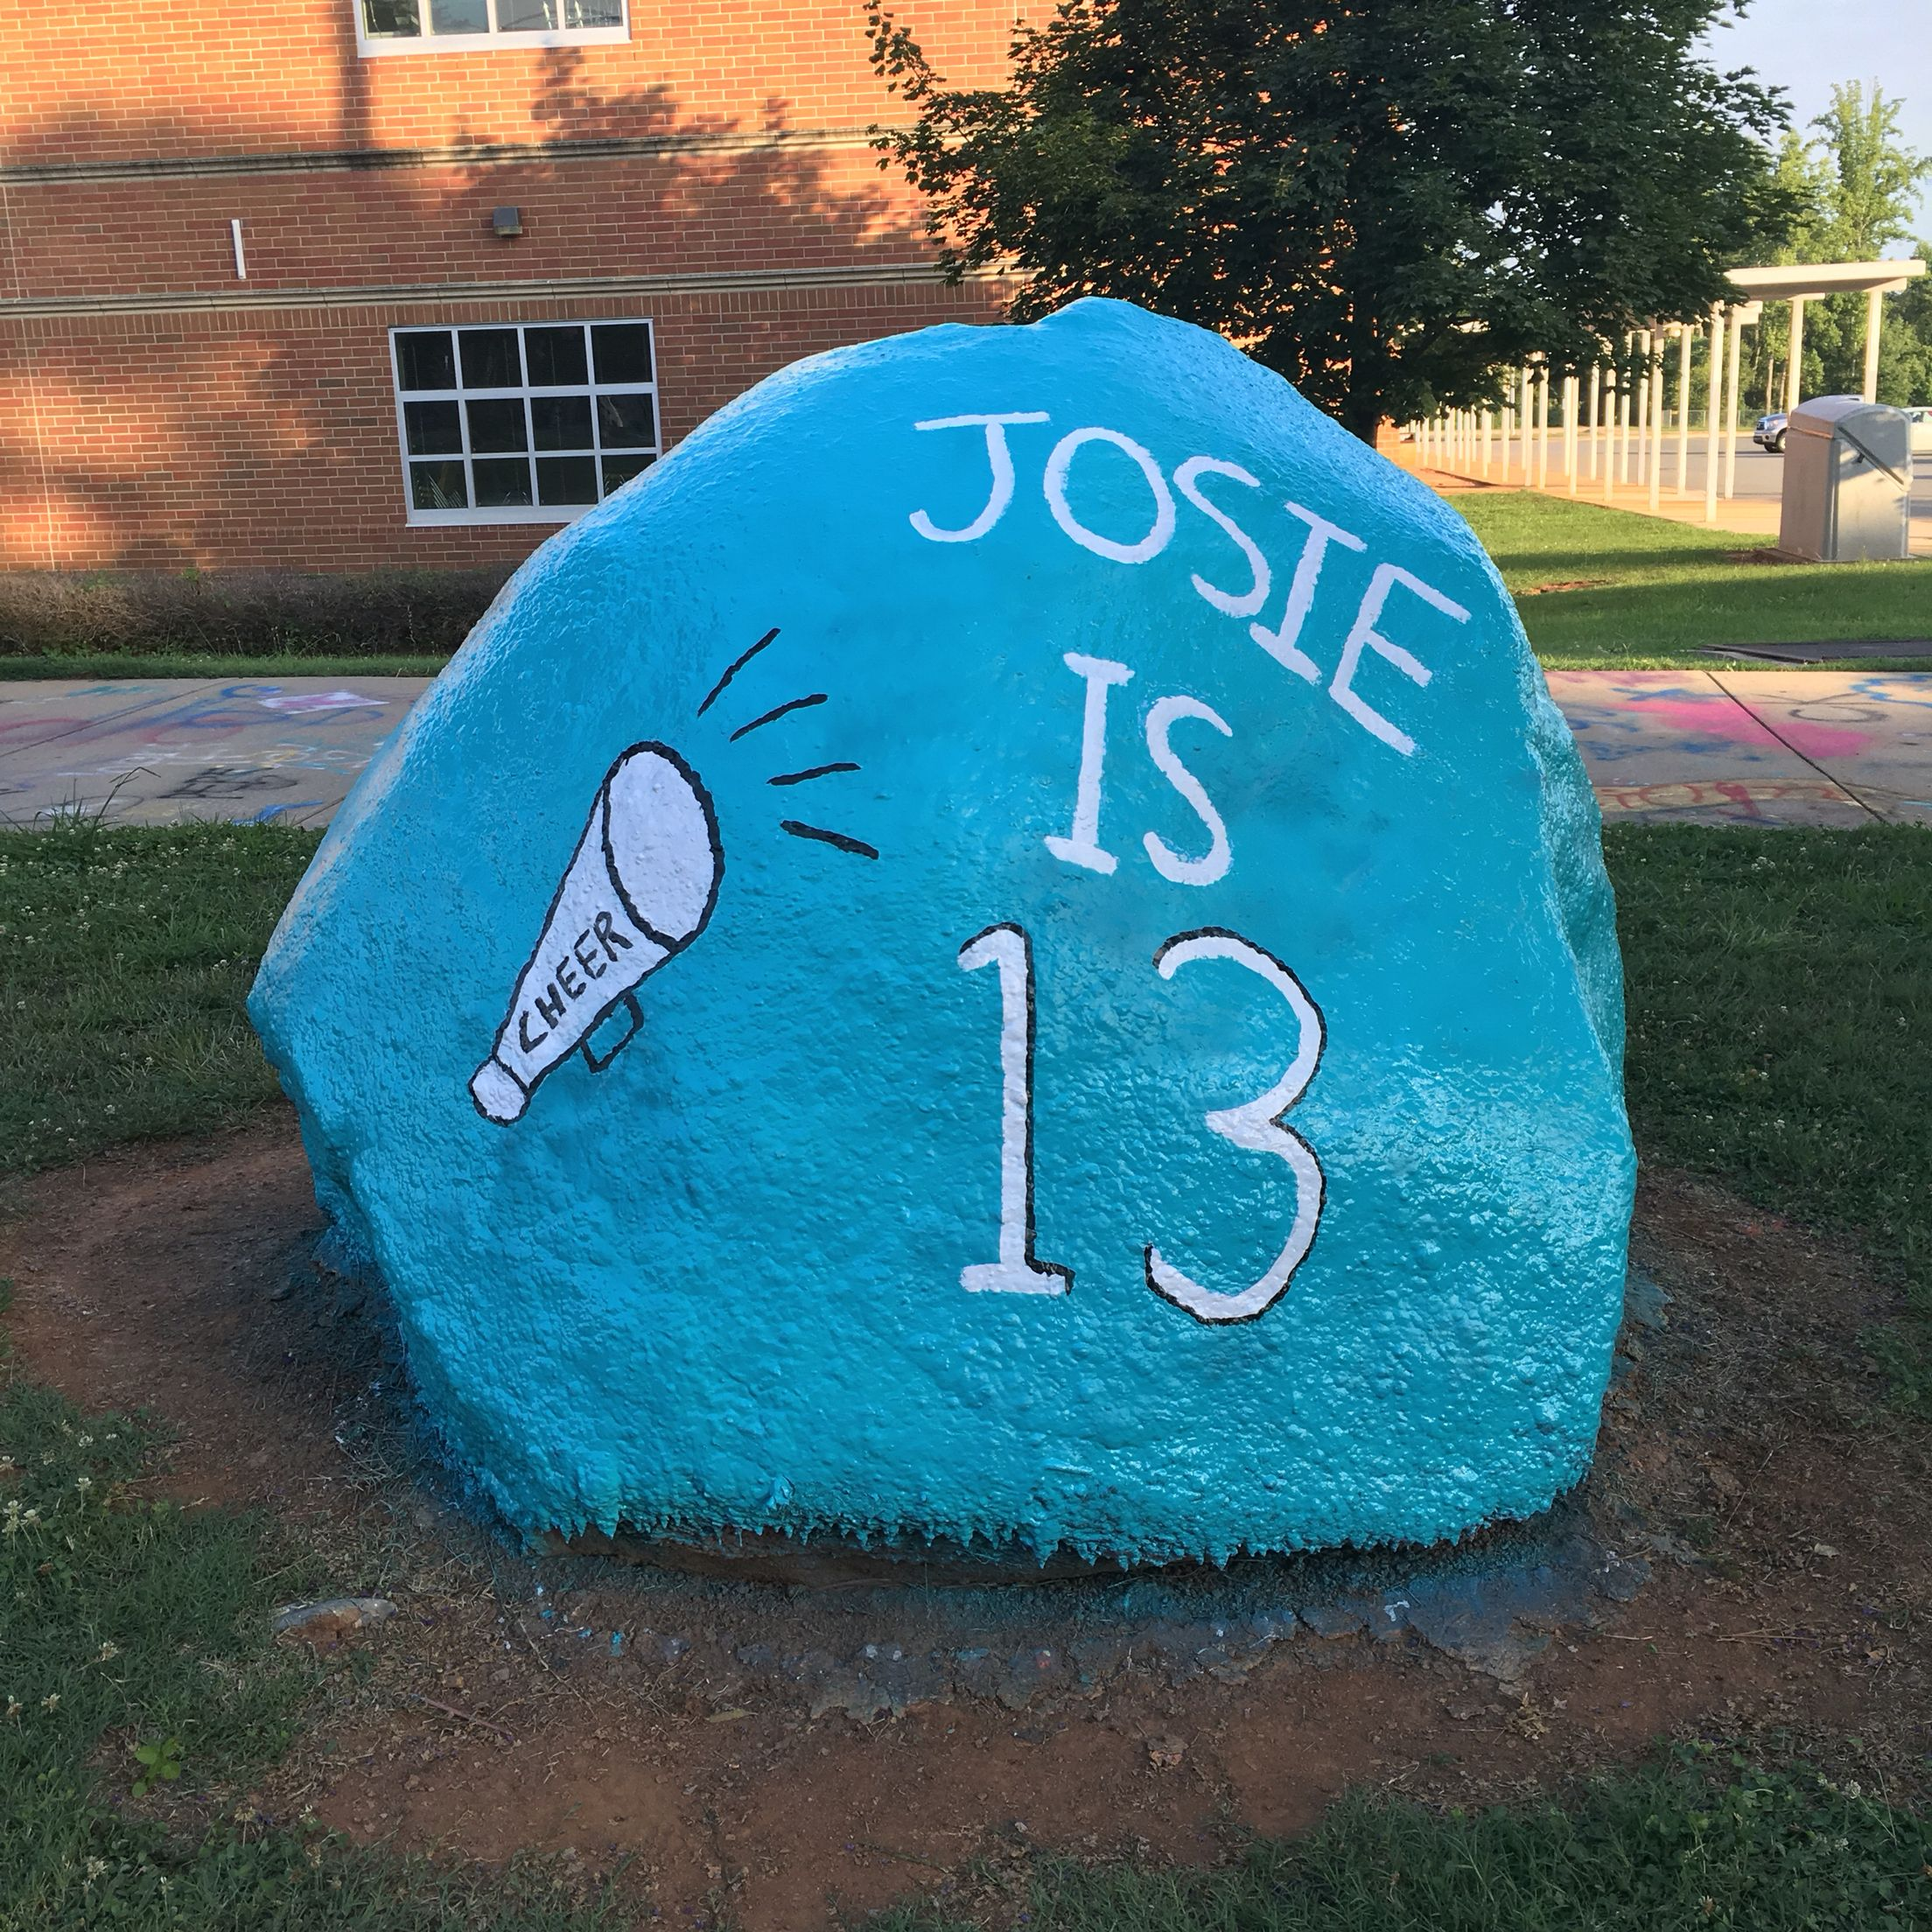 What you need to paint a spirit rock: - 1 can of spray paint for ...